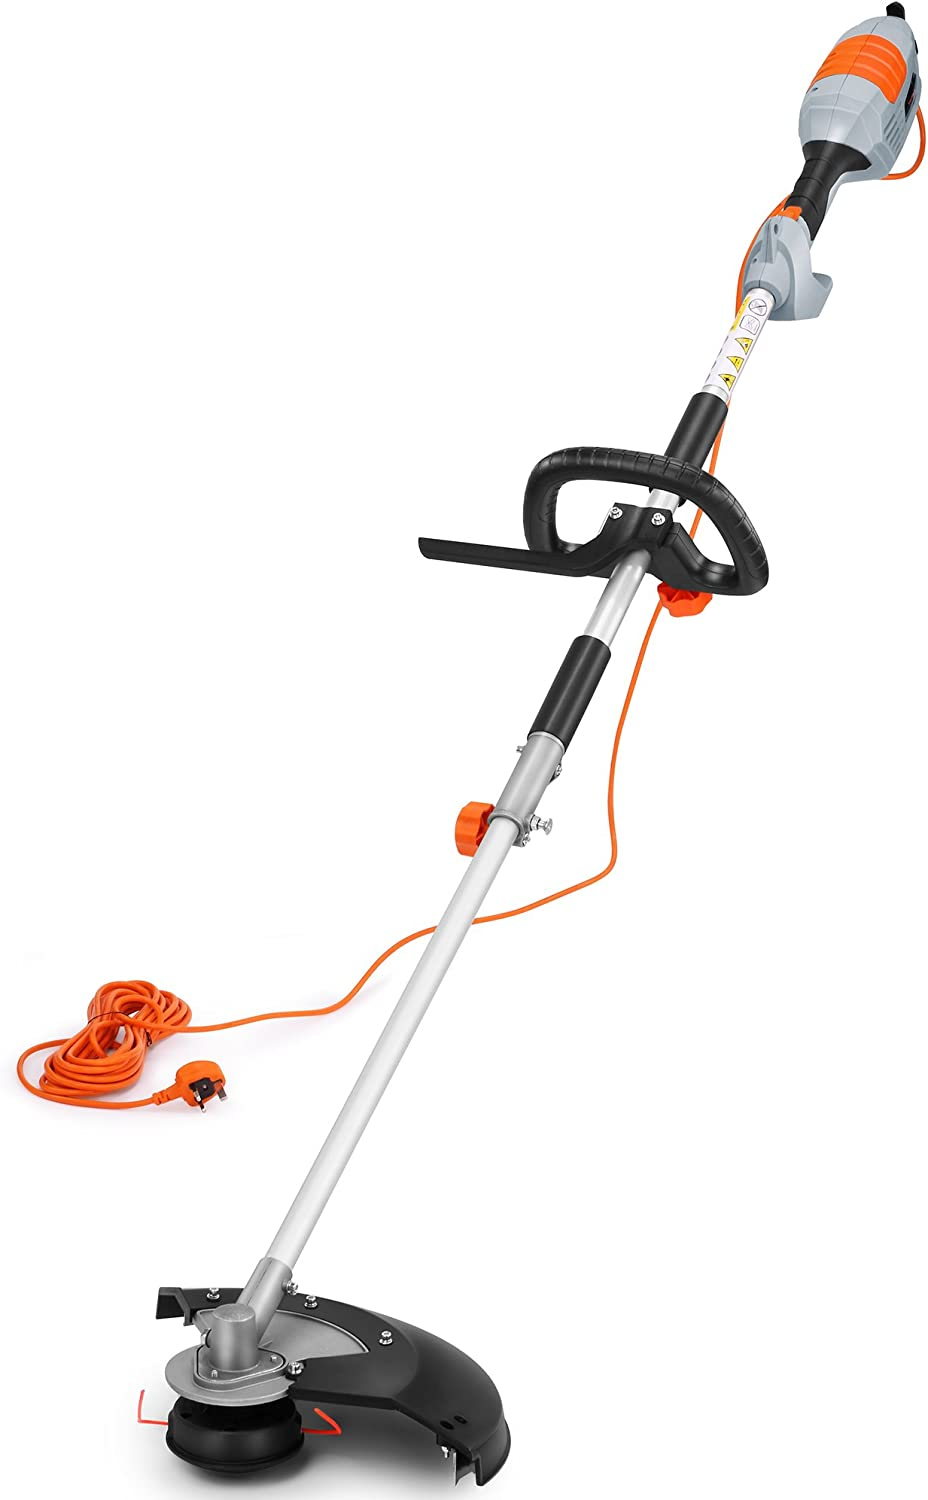 VonHaus 2 In 1 Grass Trimmer & Brush Cutter 1000W – Long 10m Cable & 380mm Max. Cutting Width